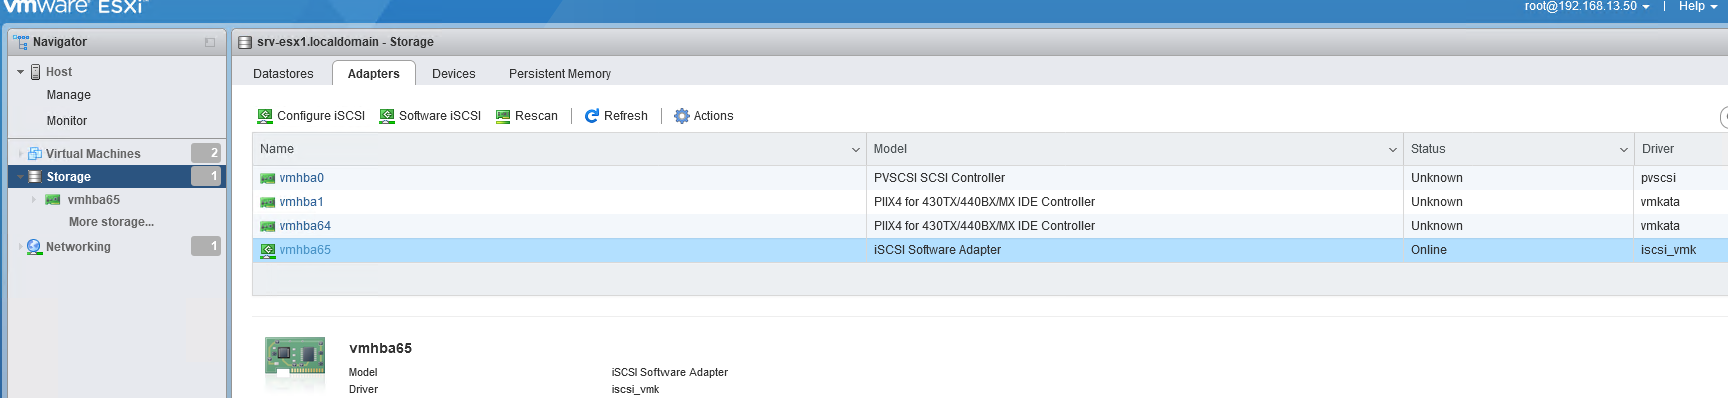 vmhba65 типа iSCSI Software Adapter